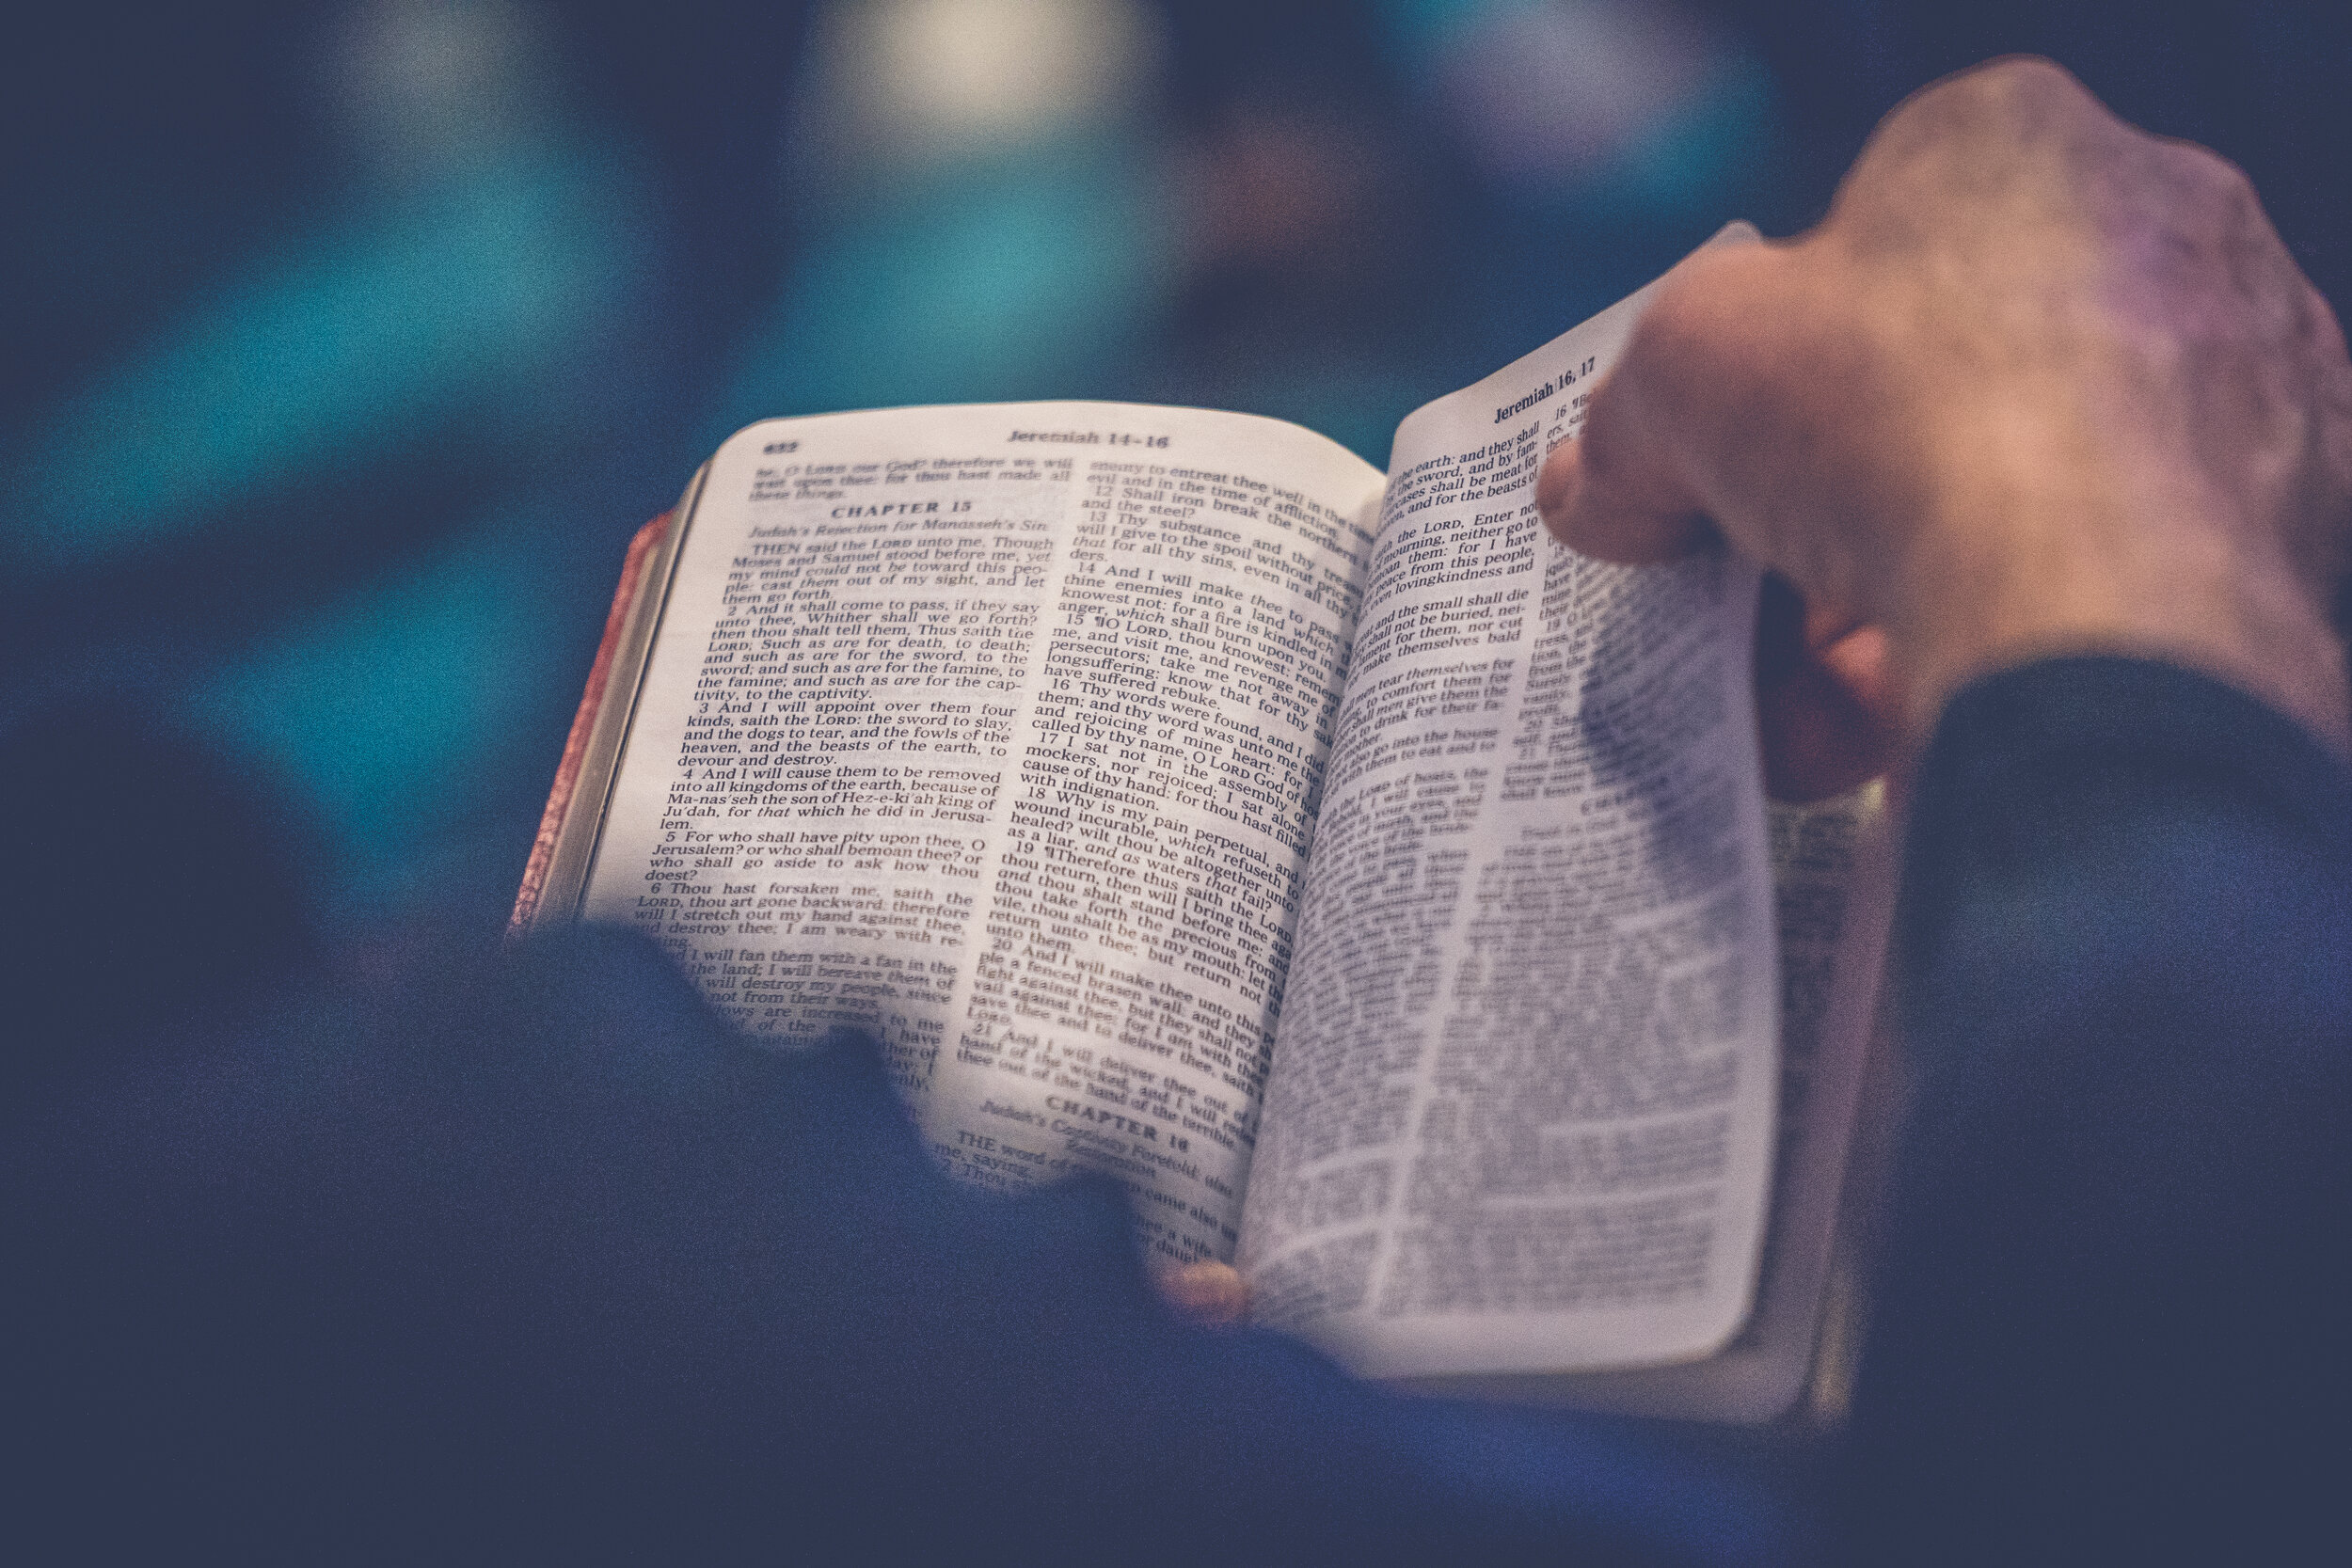 Adult Wednesday evening Bible Study.6:00 p.m. - We are currently going through the book of Micah 2019-2020